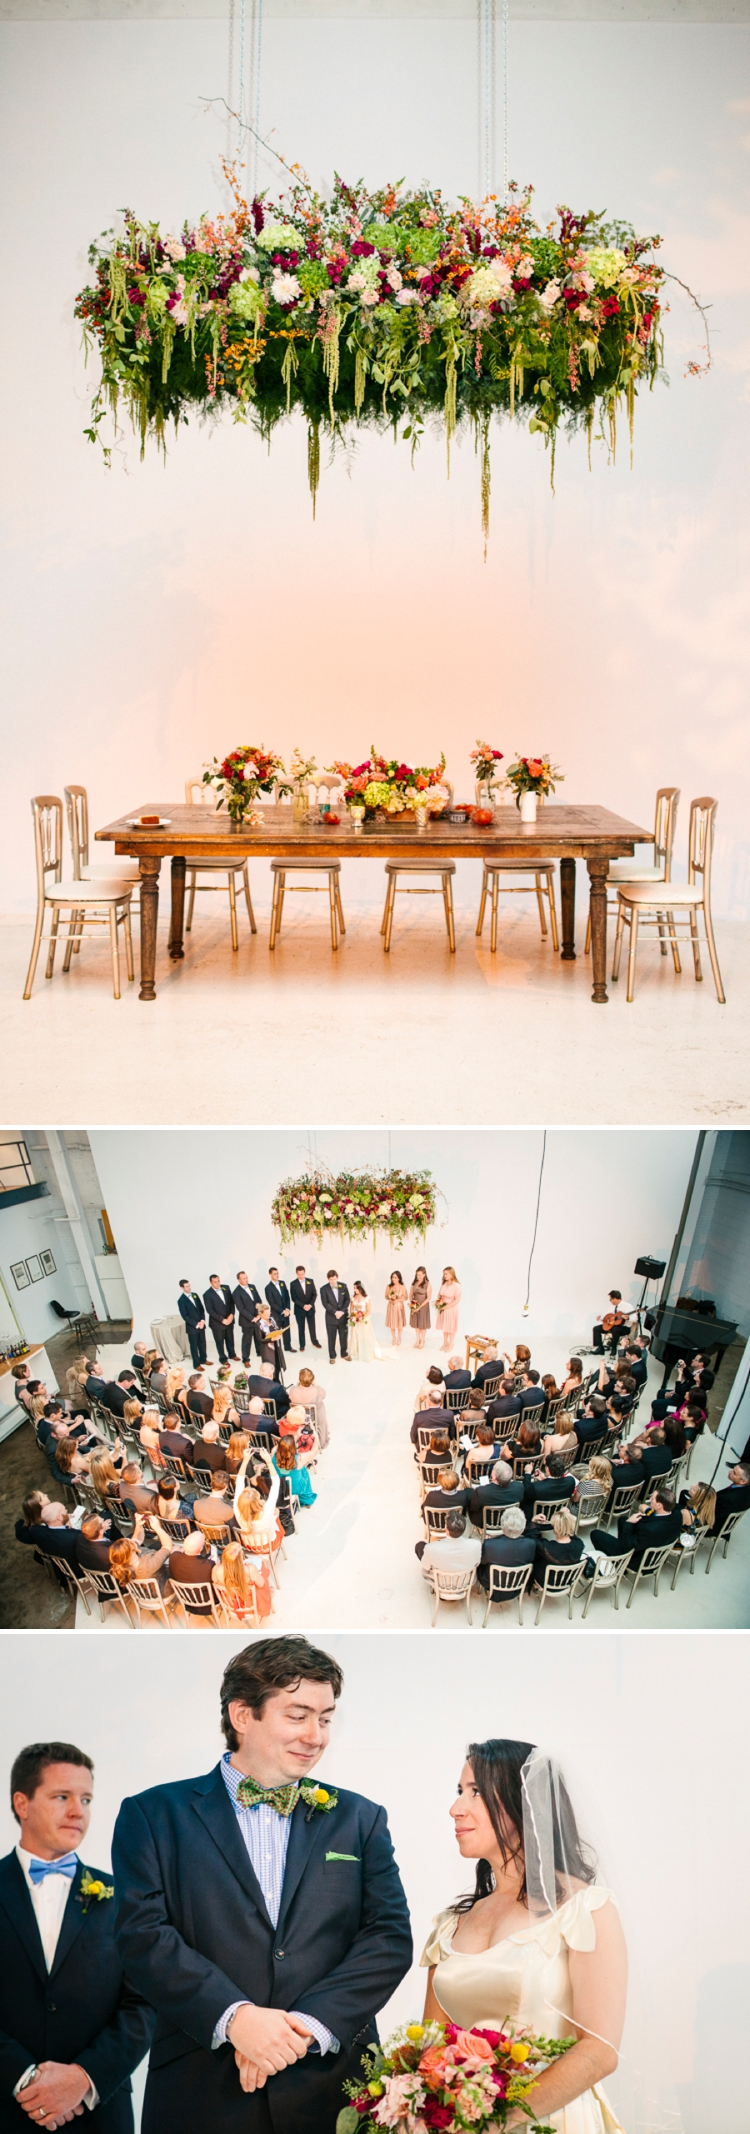 floral chuppah Jewish wedding